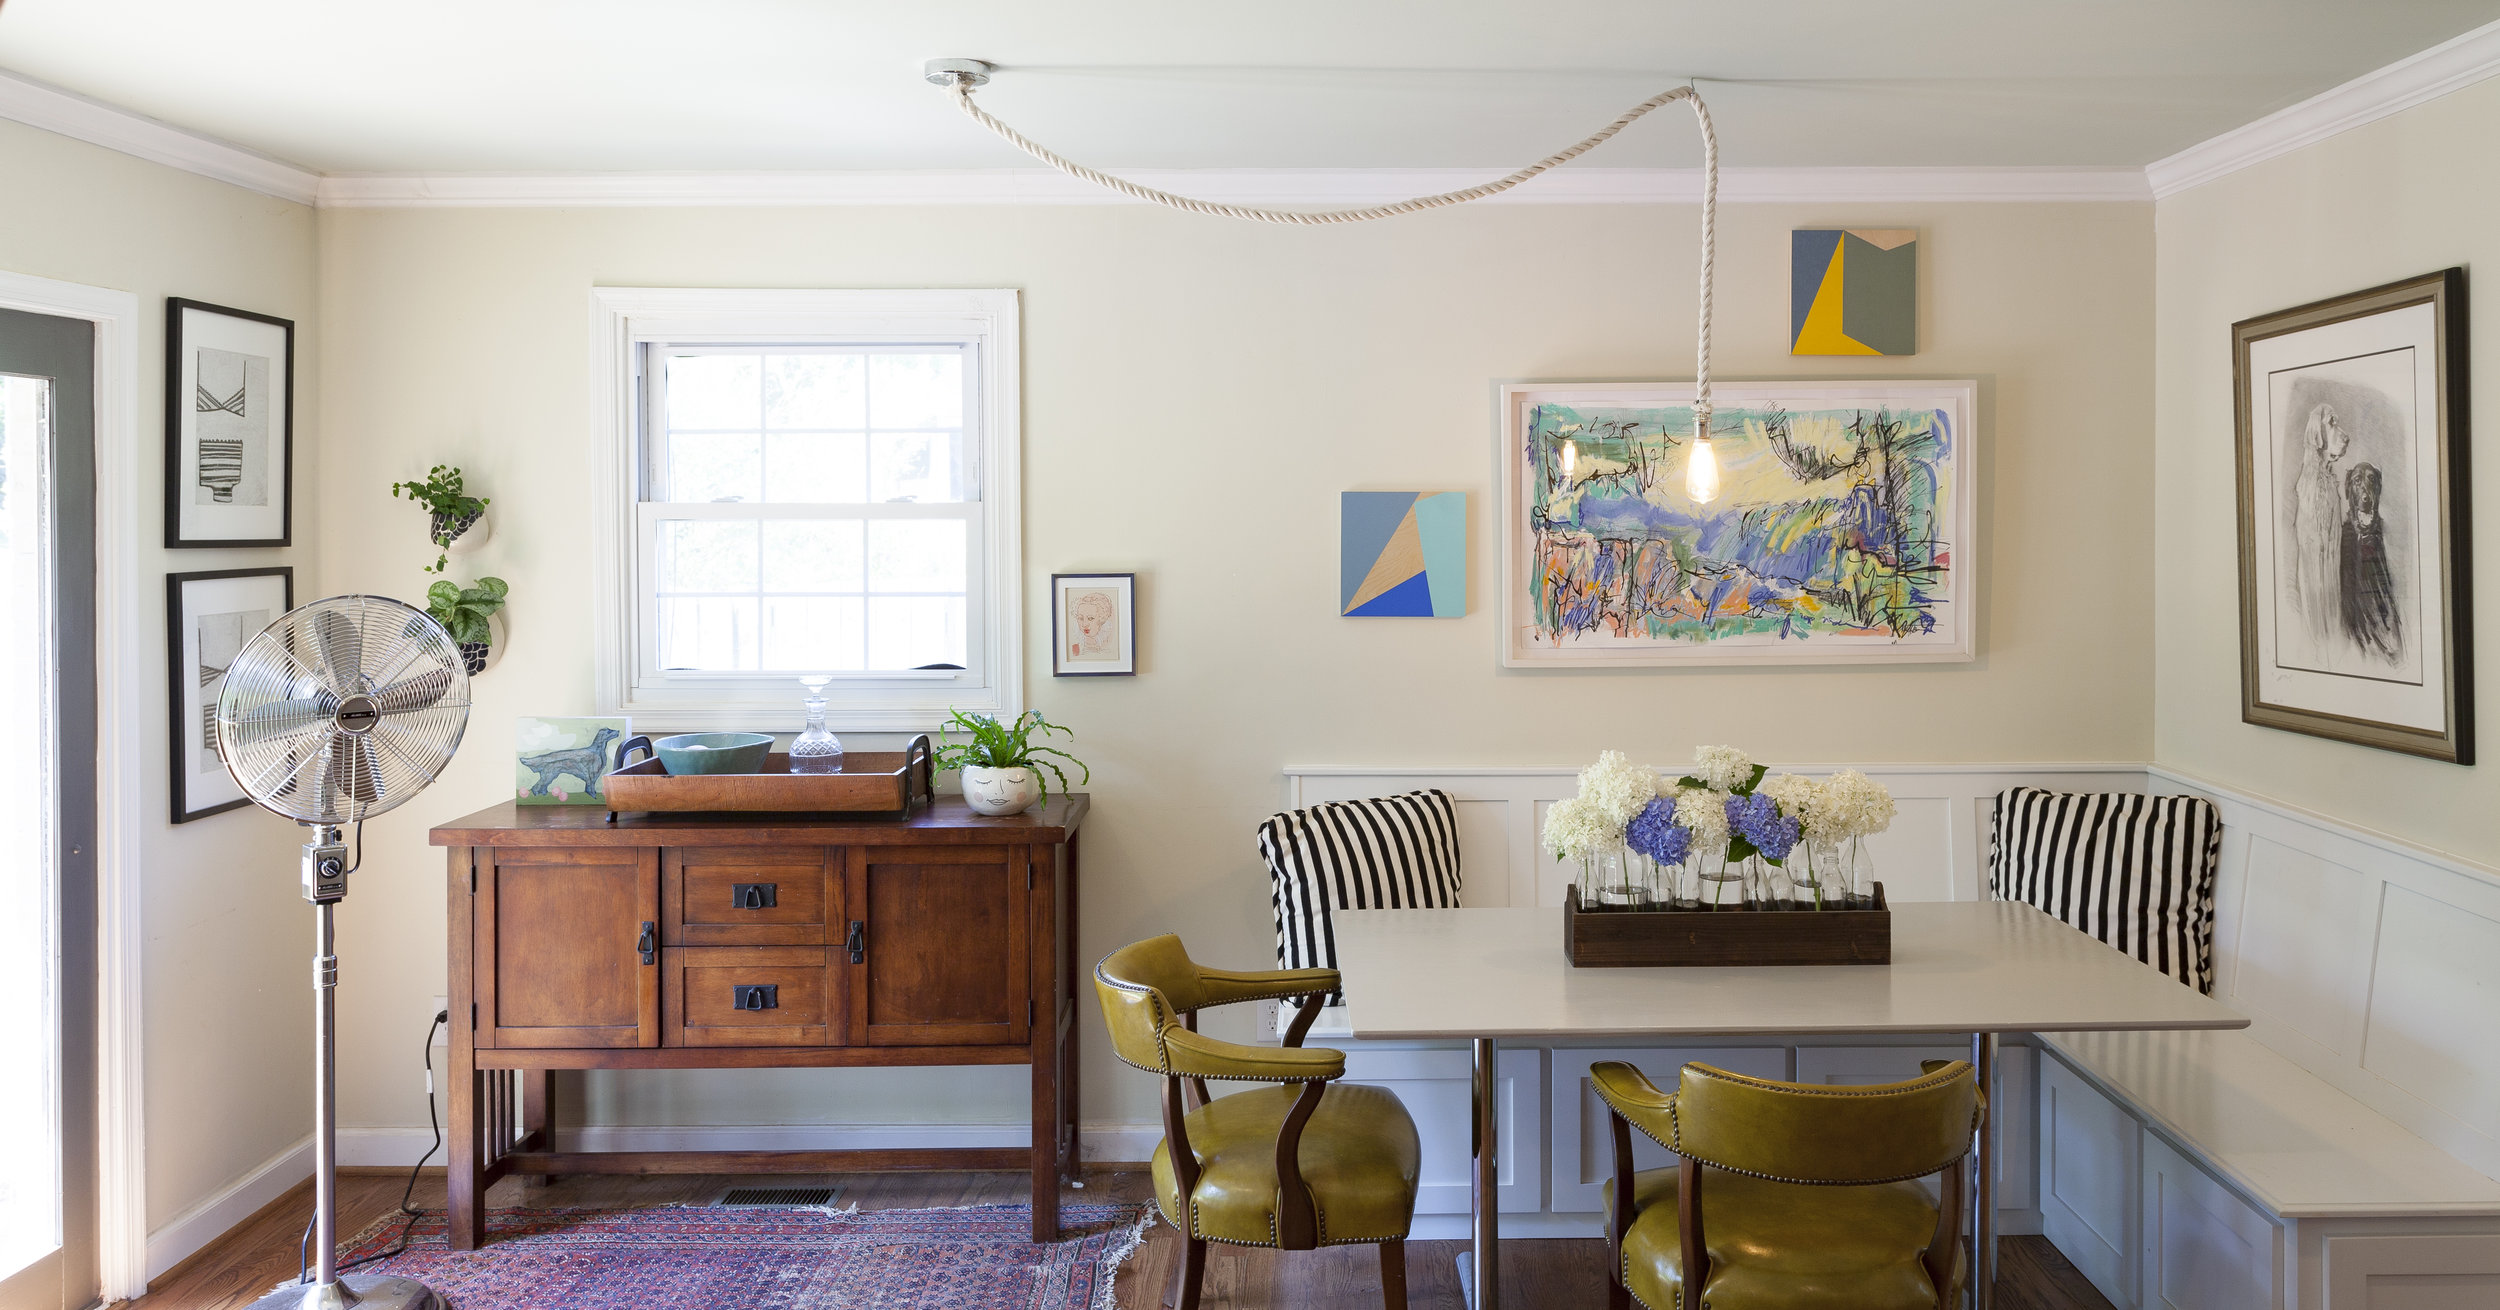 This kitchen table installation features the work of  Kiah Bellows ,  Jeffrey Leder ,  Annie Koelle  and  Dorothy Shain .